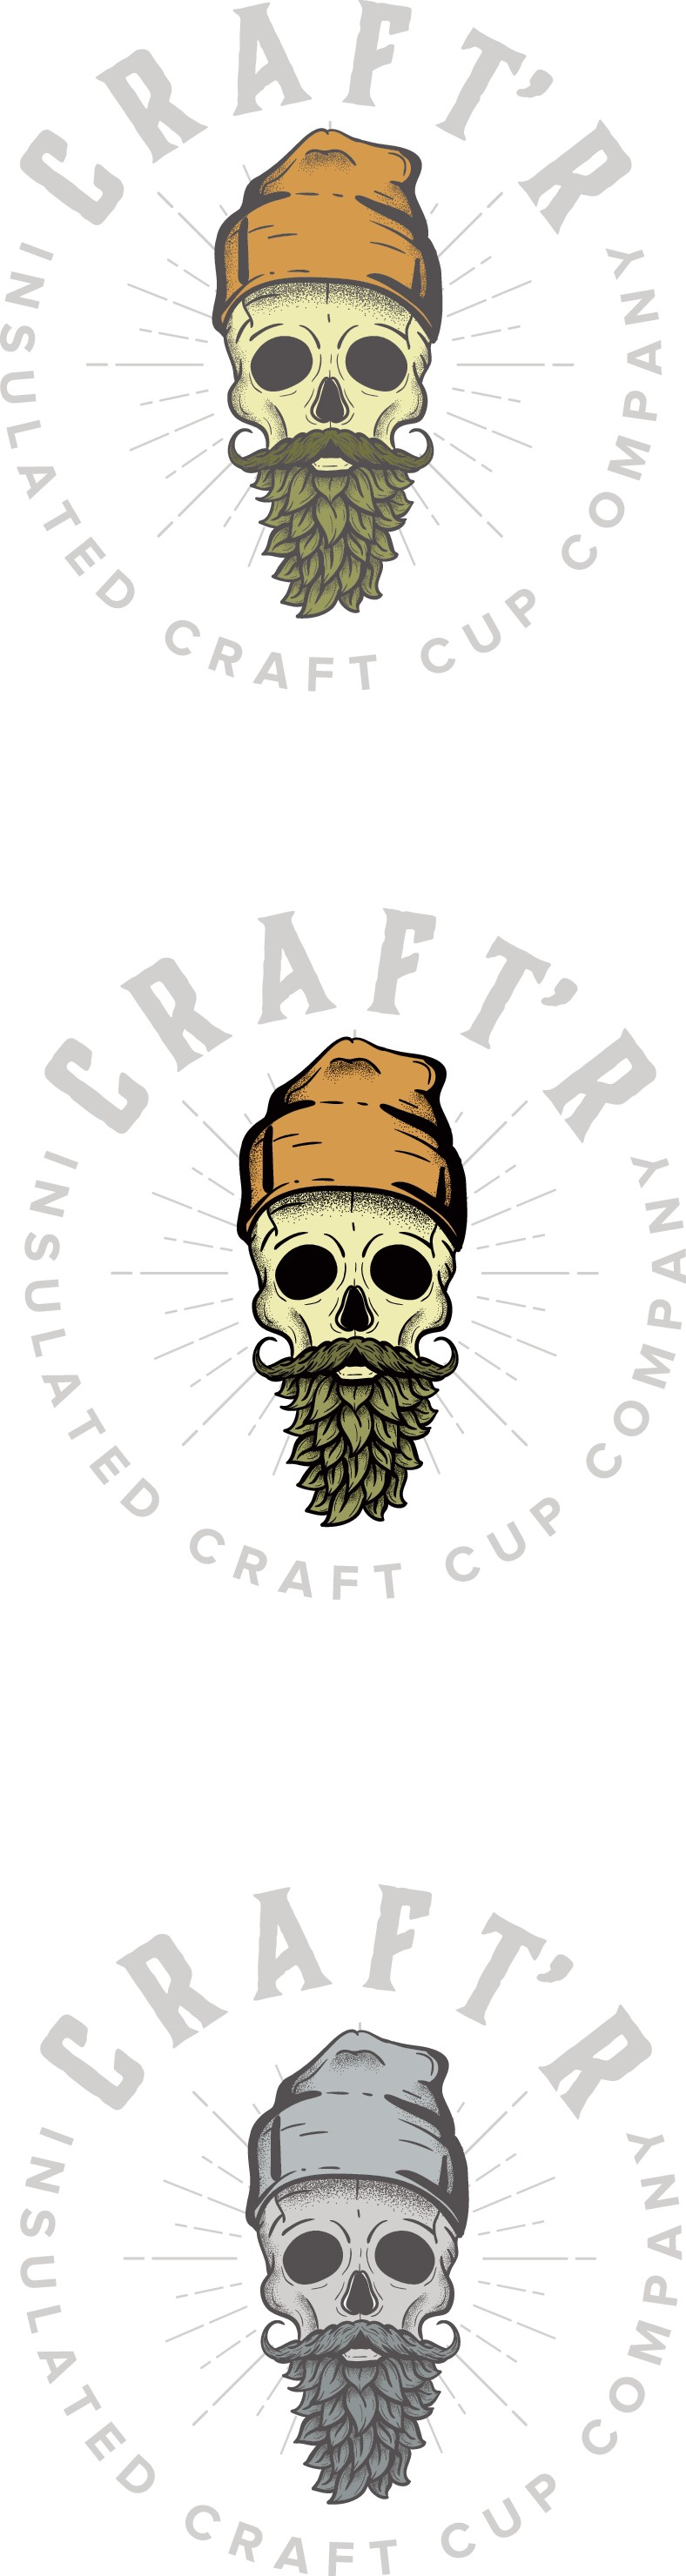 Create an edgy logo for insulated craft beer tumbler called Craft`r